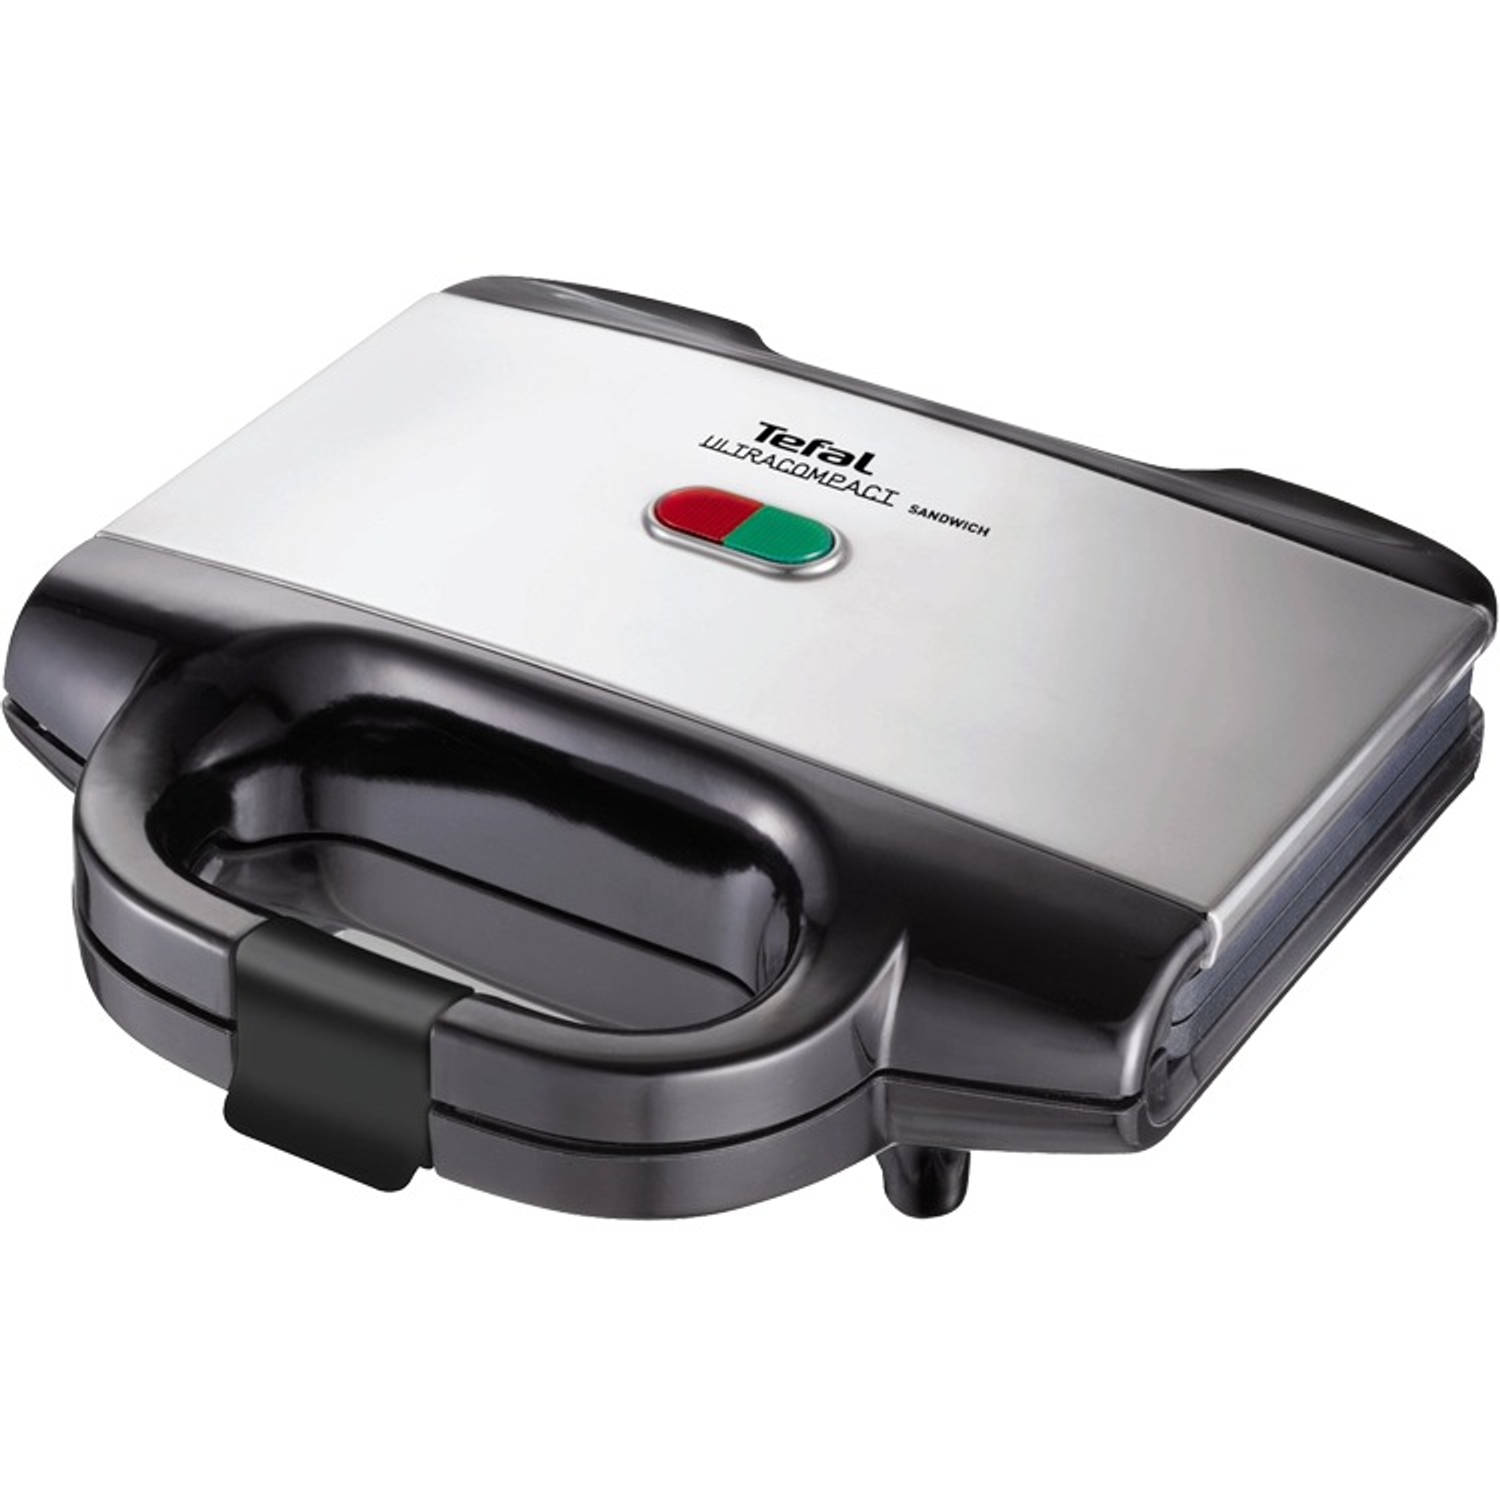 Tefal sm 1552 ultracompact tostiapparaat